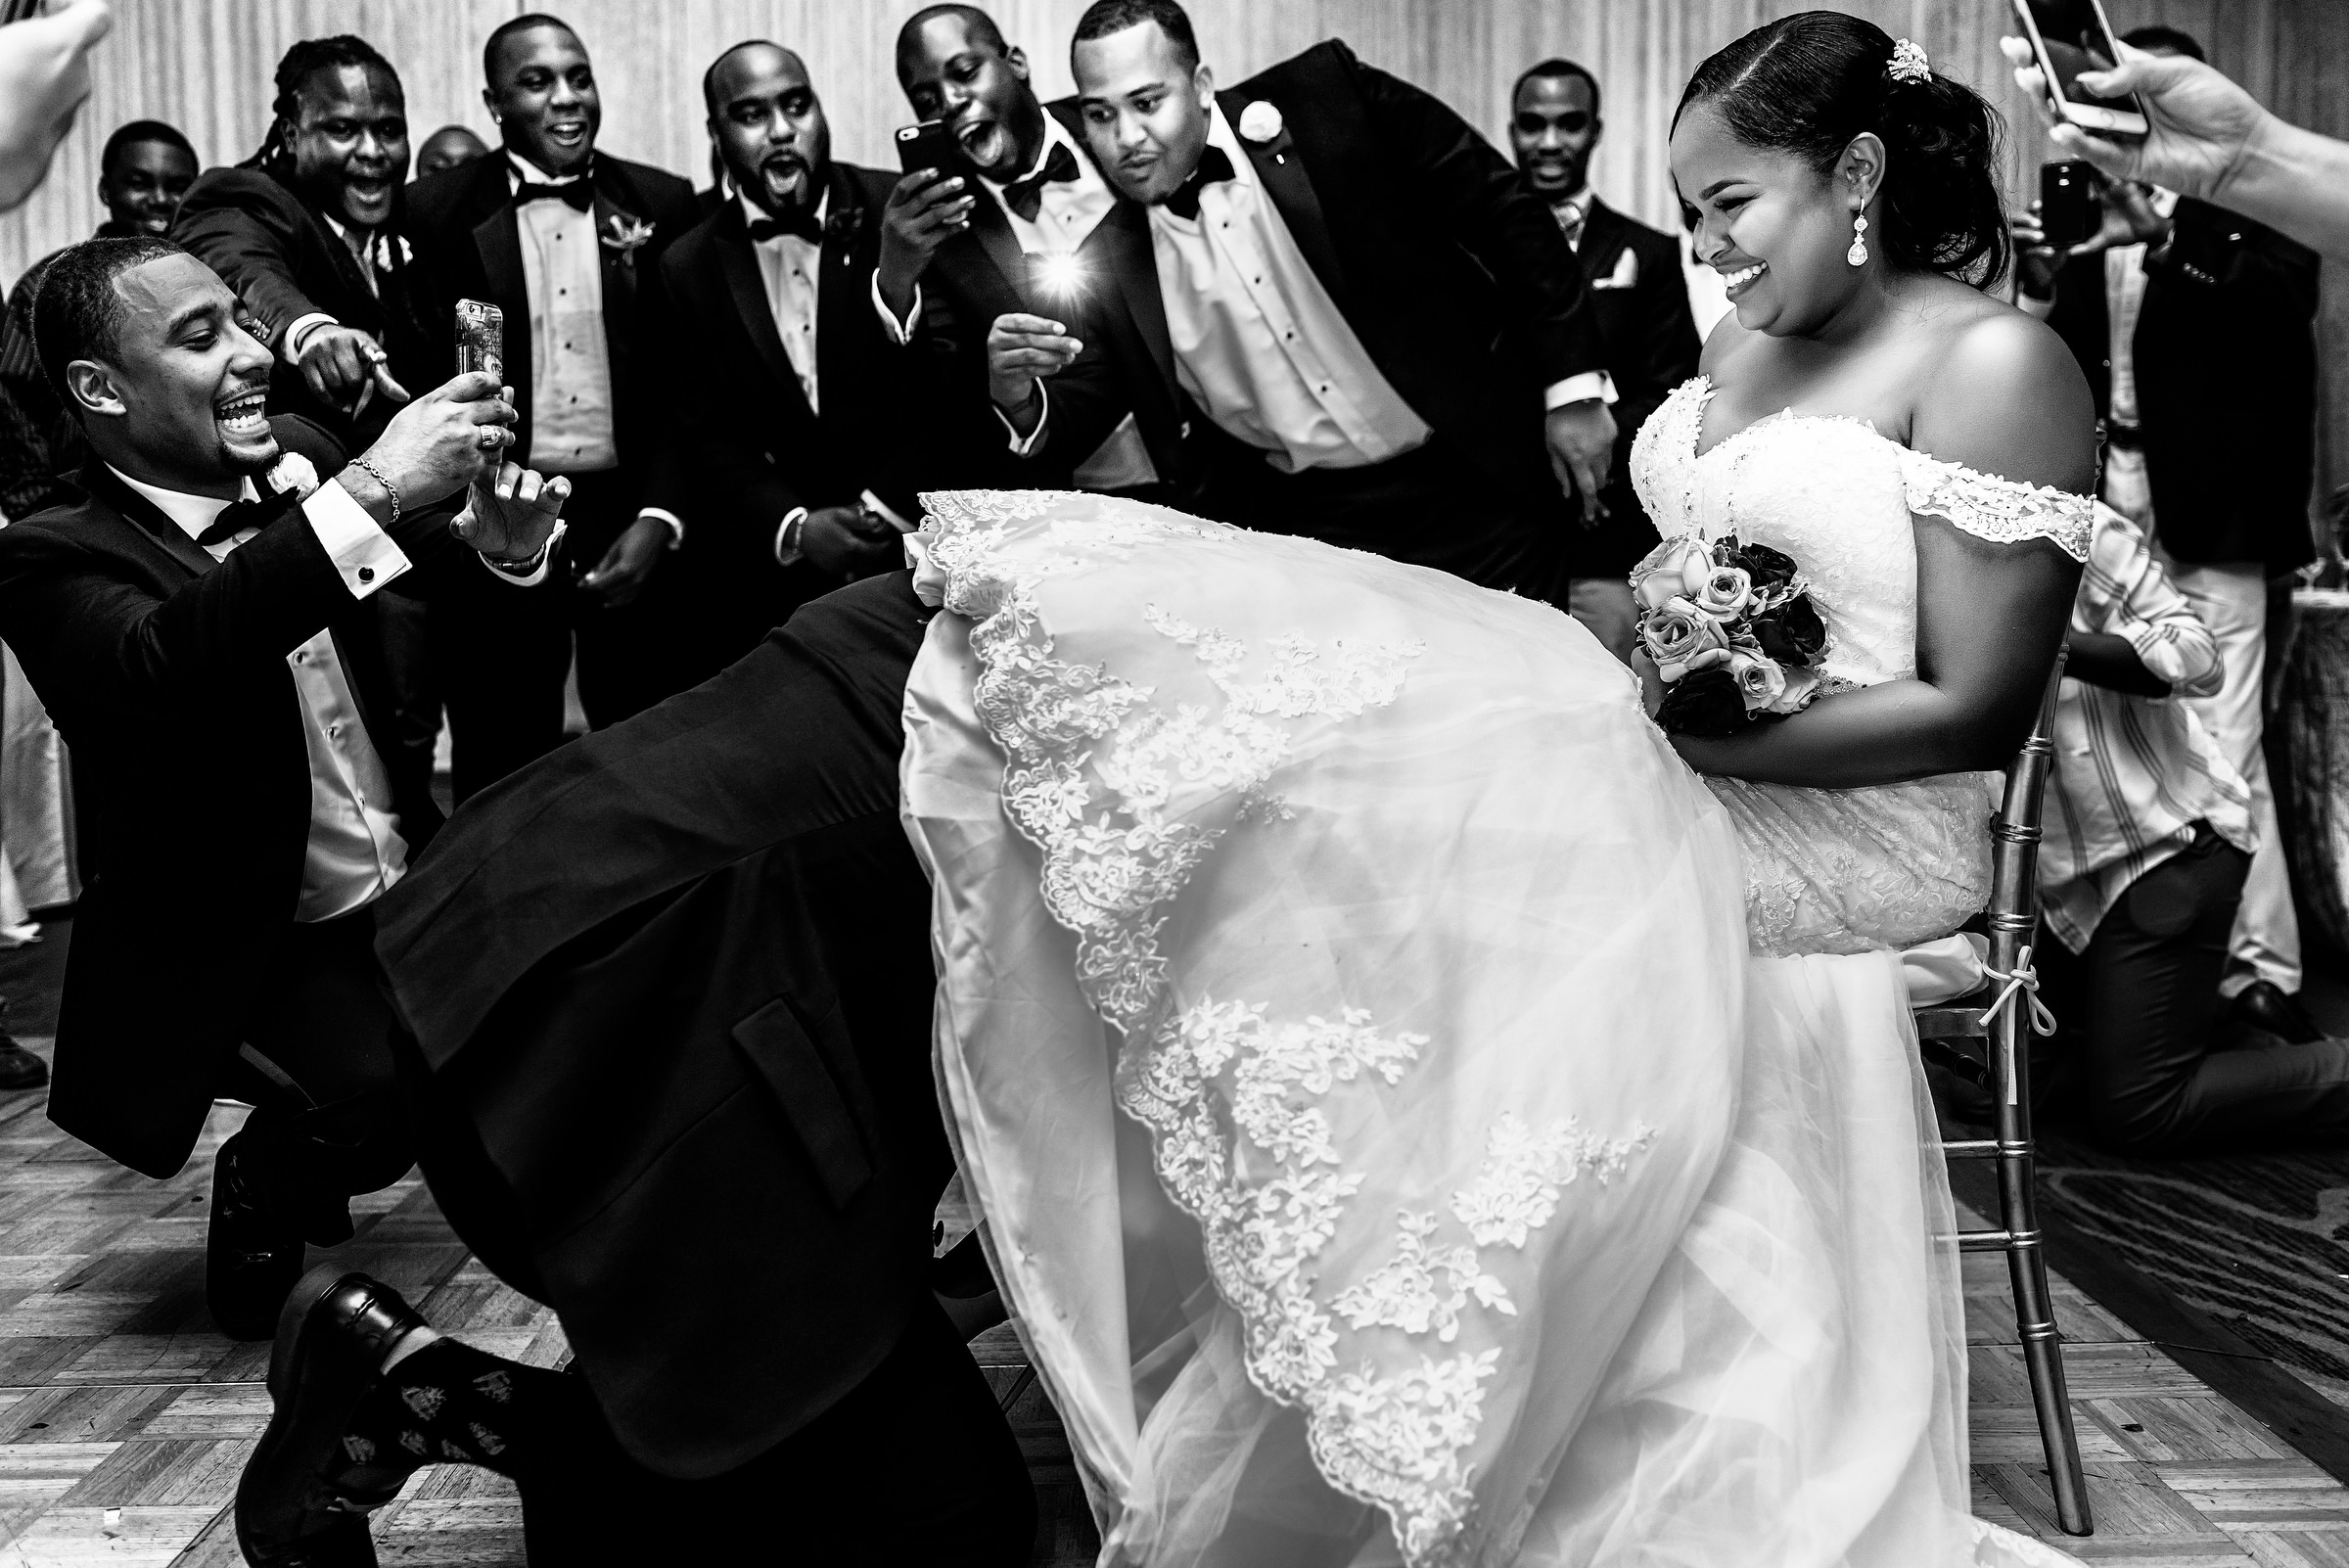 Groom hunting for bride's garter - photo by Kirth Bobb Photography